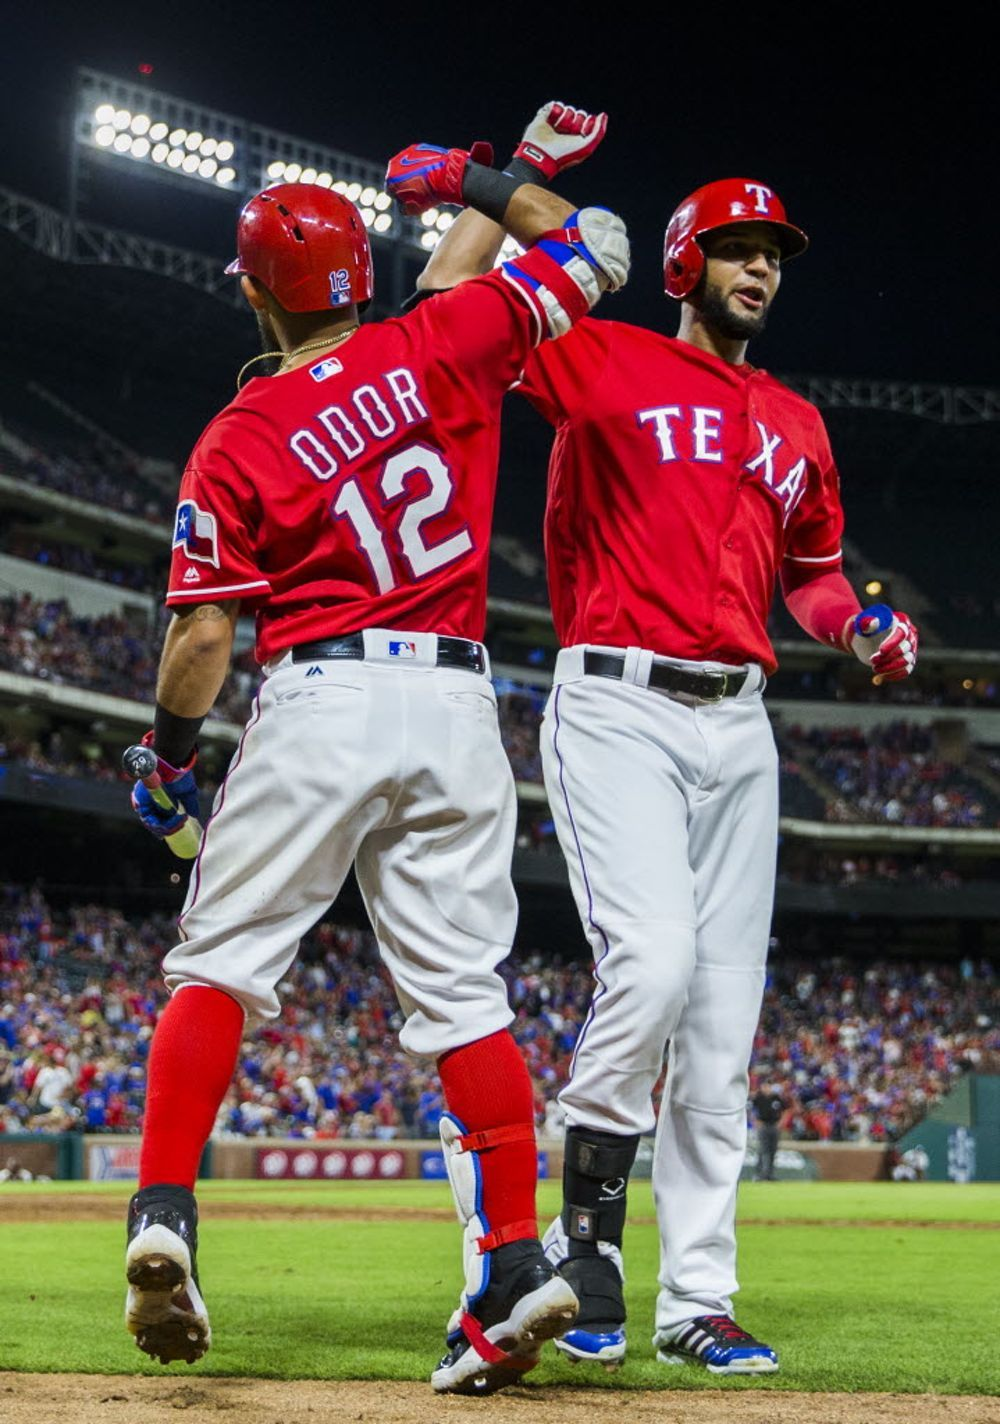 Texas Rangers Second Baseman Rougned Odor 12 High Fives Right Fielder Nomar Mazara 30 After Mazara Hit A Ho Texas Rangers Baseball Tx Rangers Texas Rangers